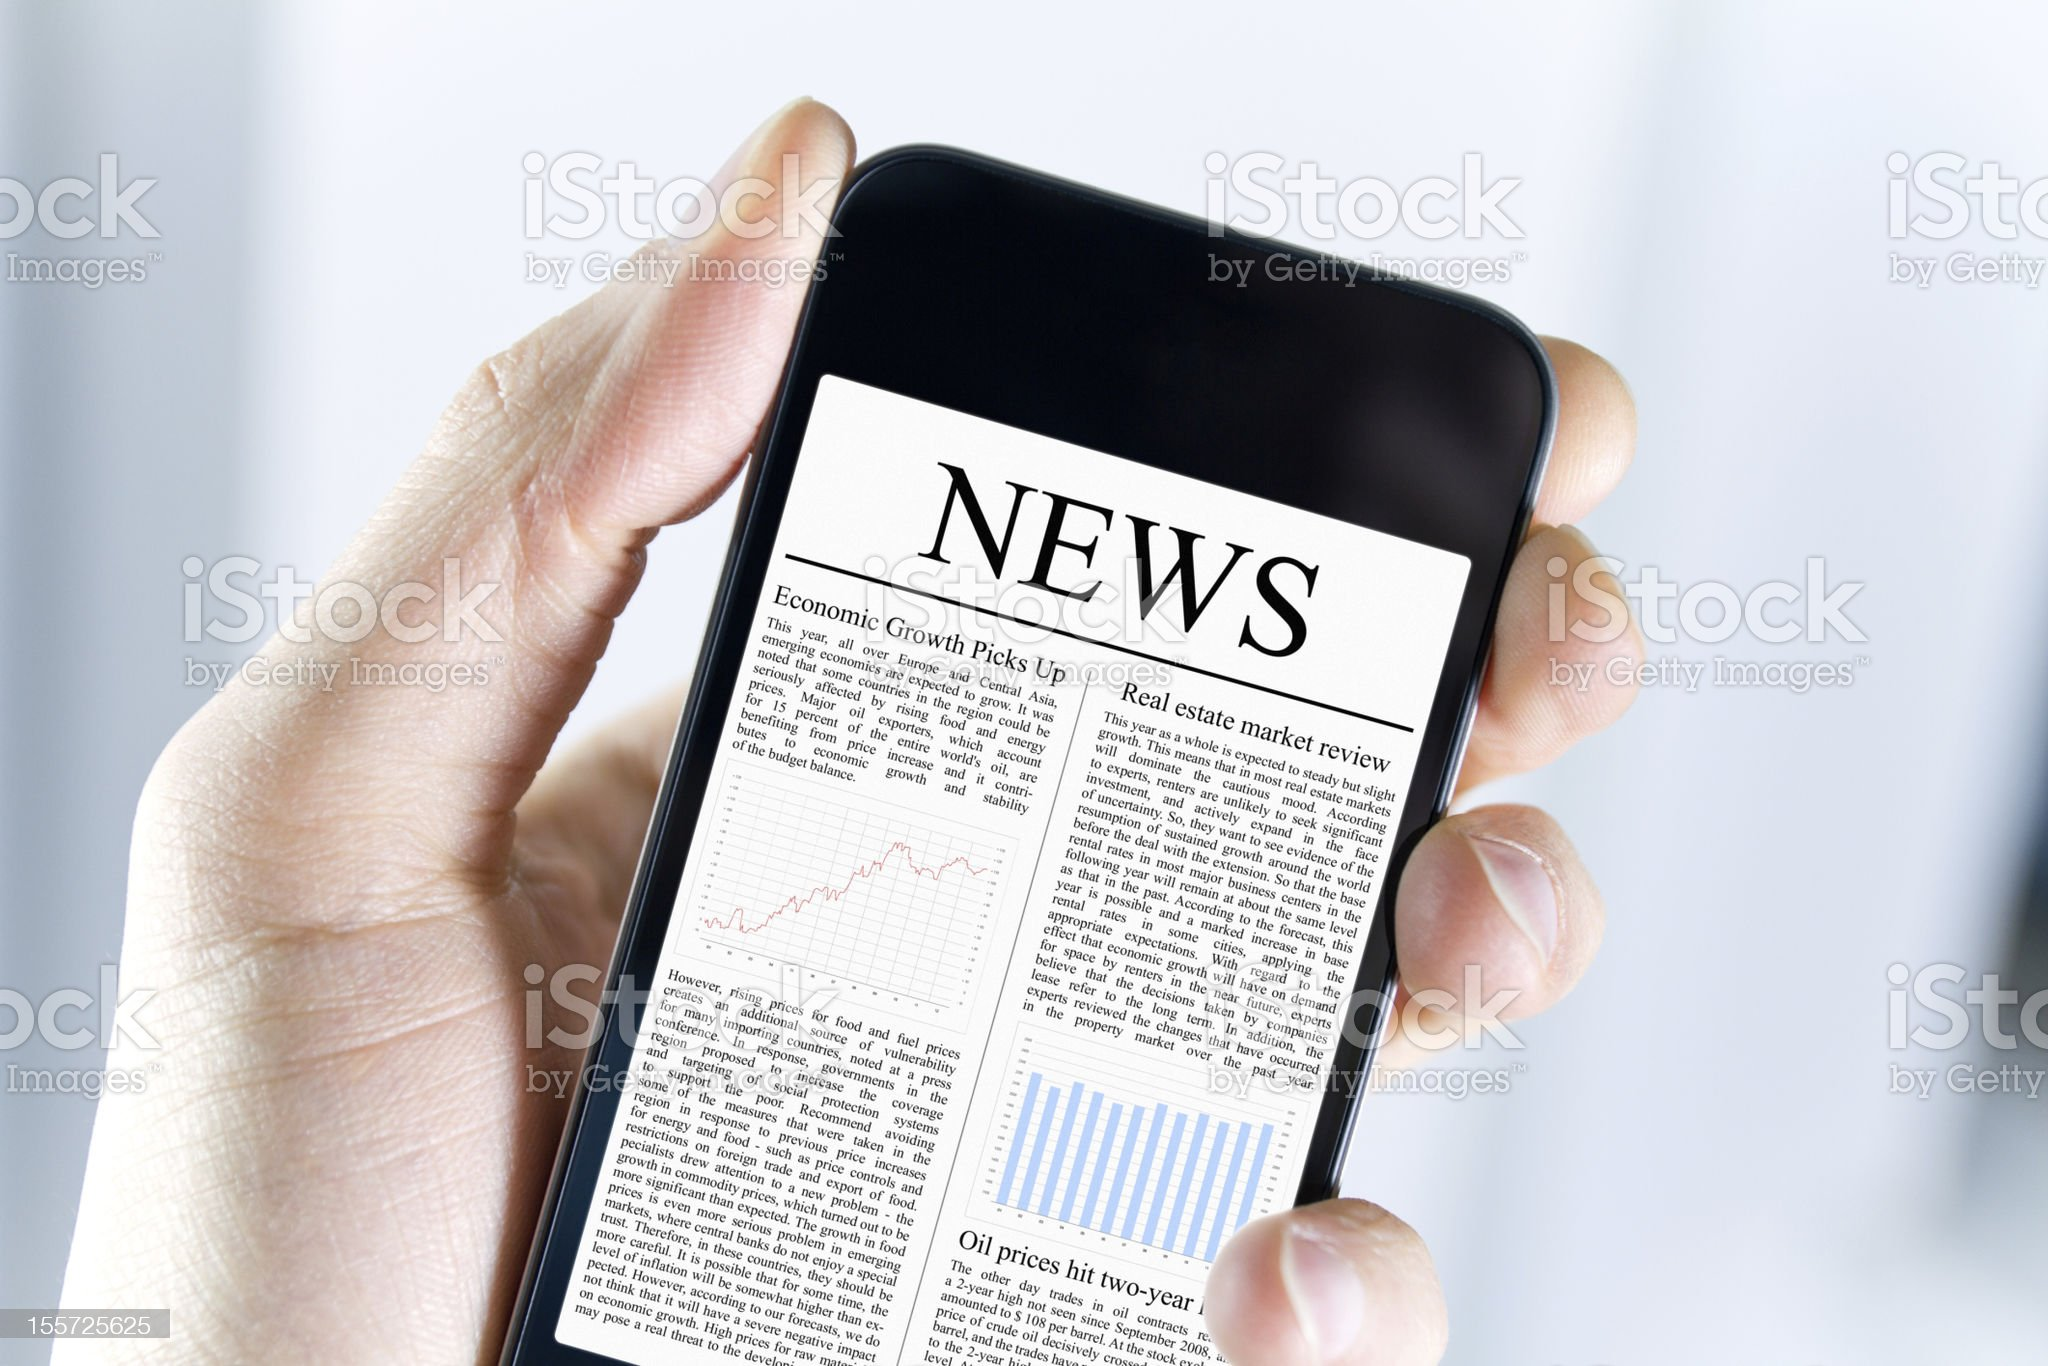 News On Mobile Phone royalty-free stock photo